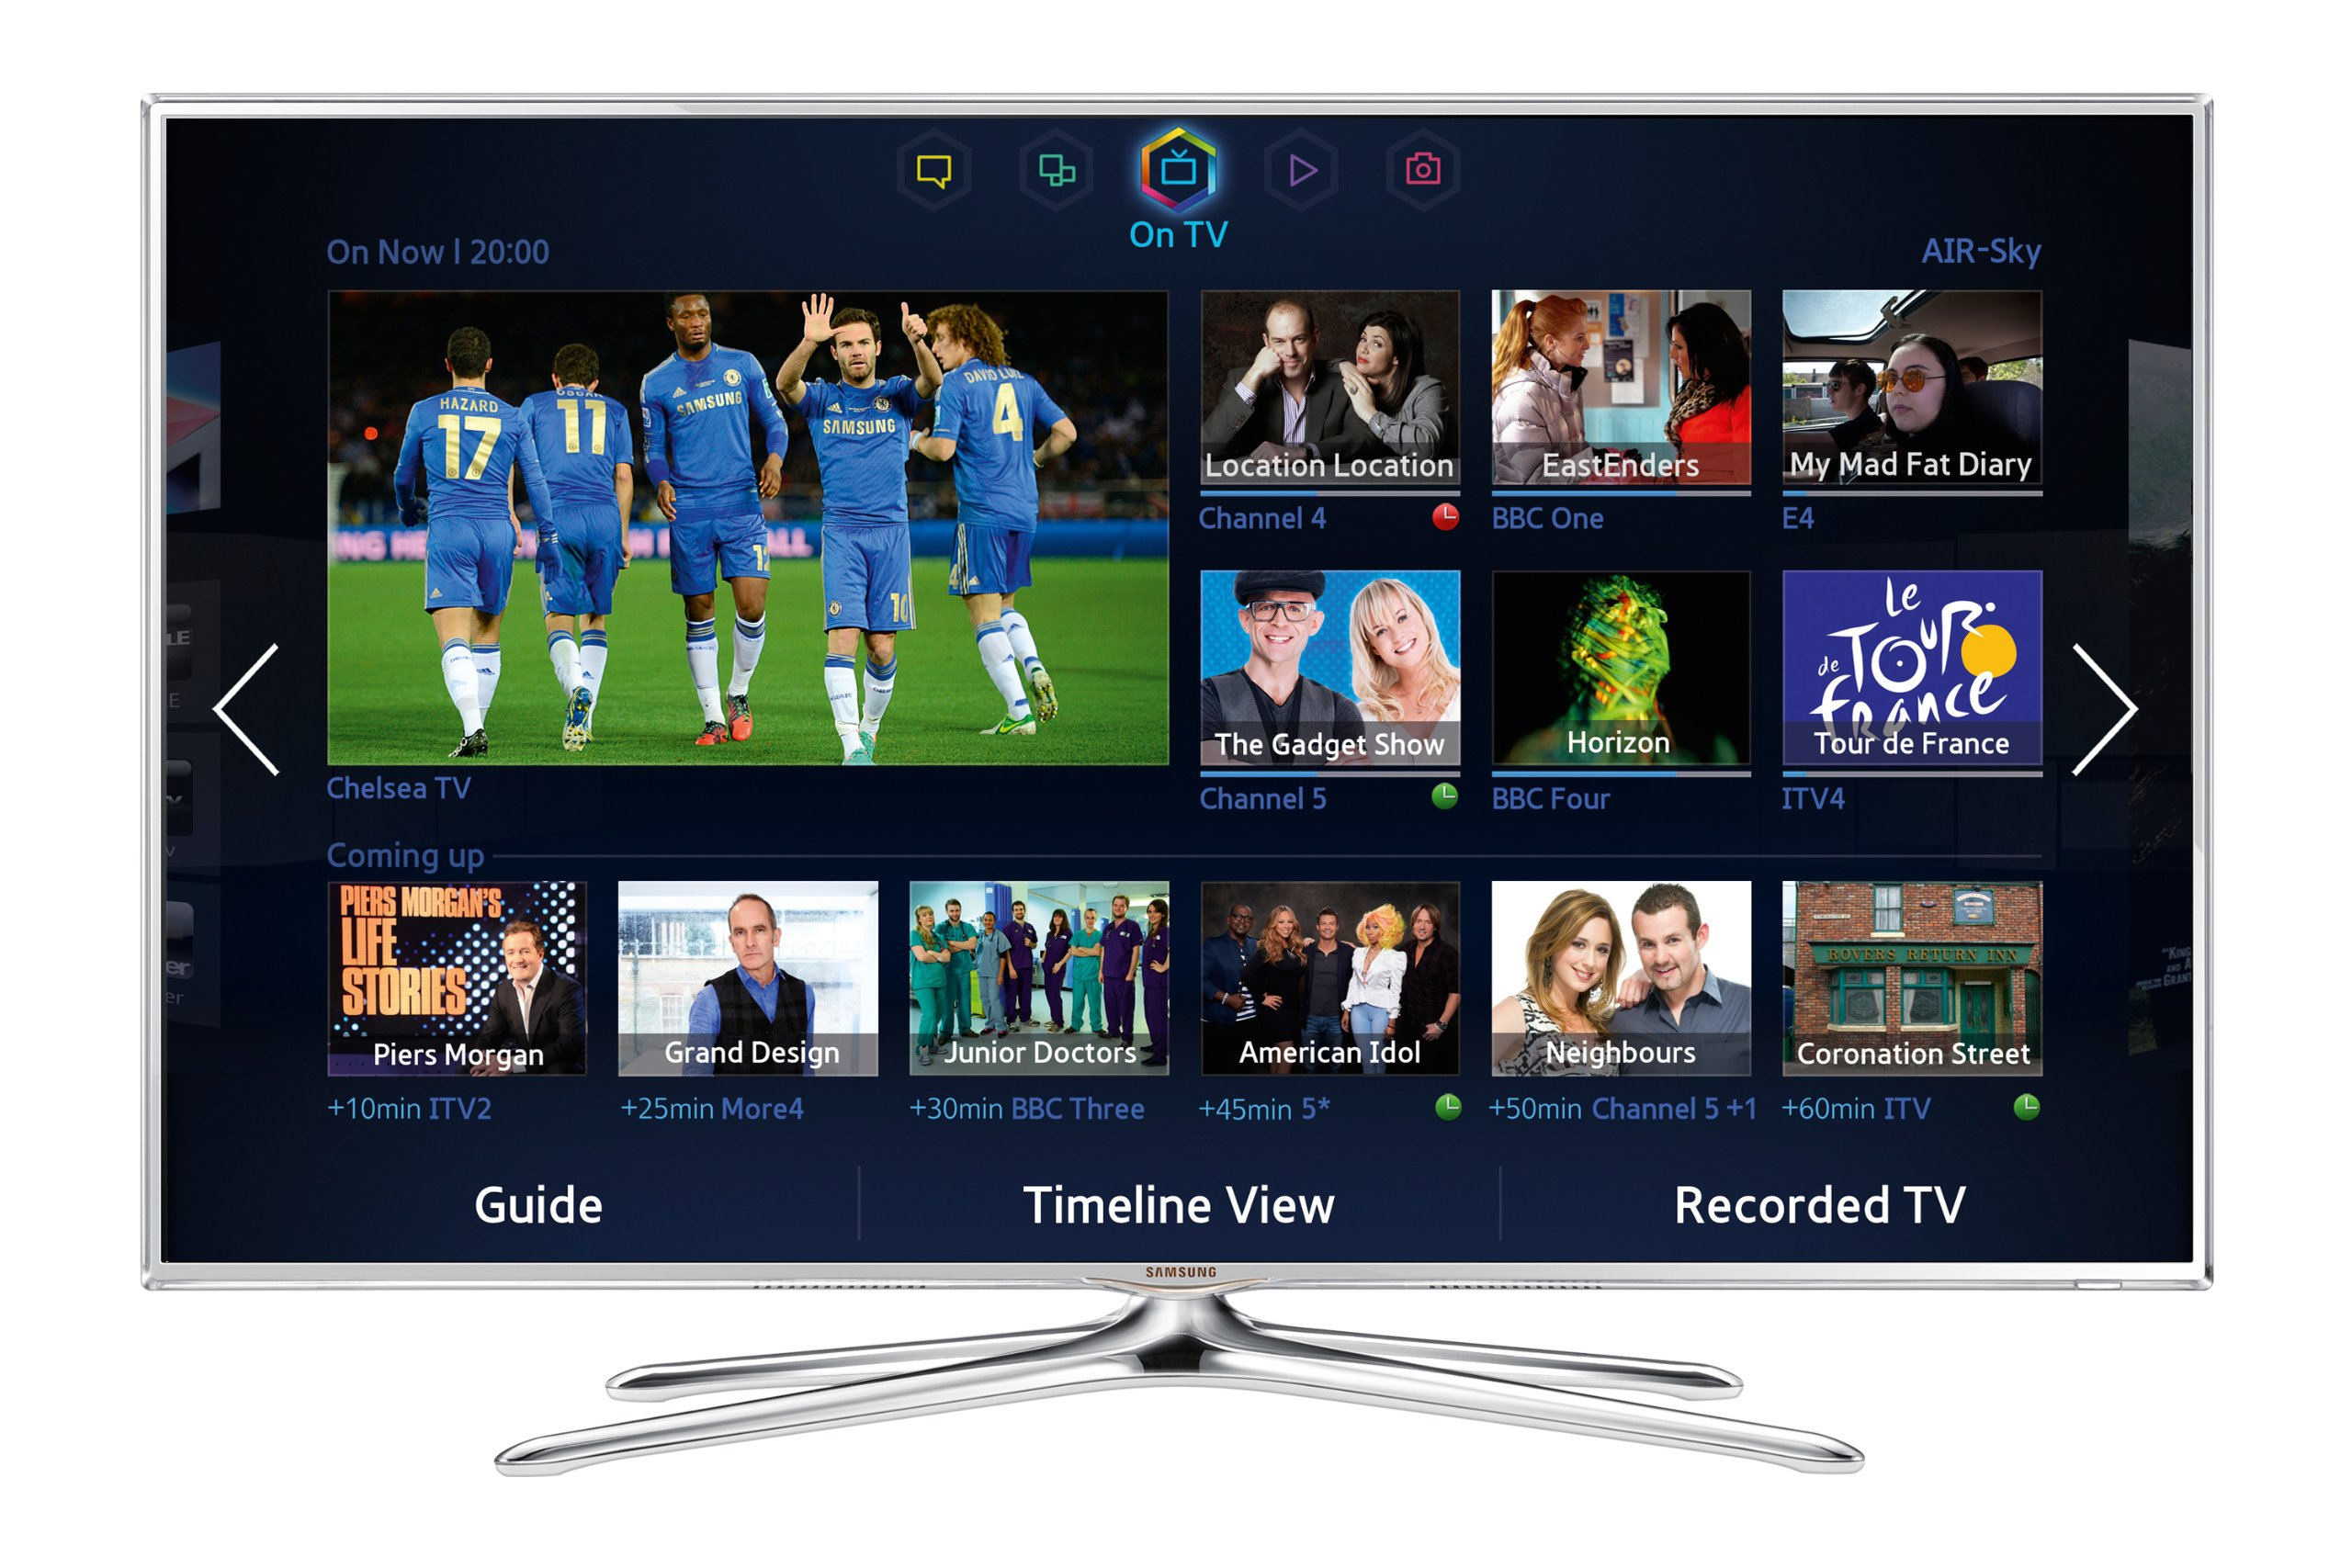 Samsung UE55F6510 55-Inch Widescreen 1080p Full HD 3D Smart LED TV with Freeview, S Recommendation, Voice Interaction, Dual Core Processing: Amazon.es: Electrónica